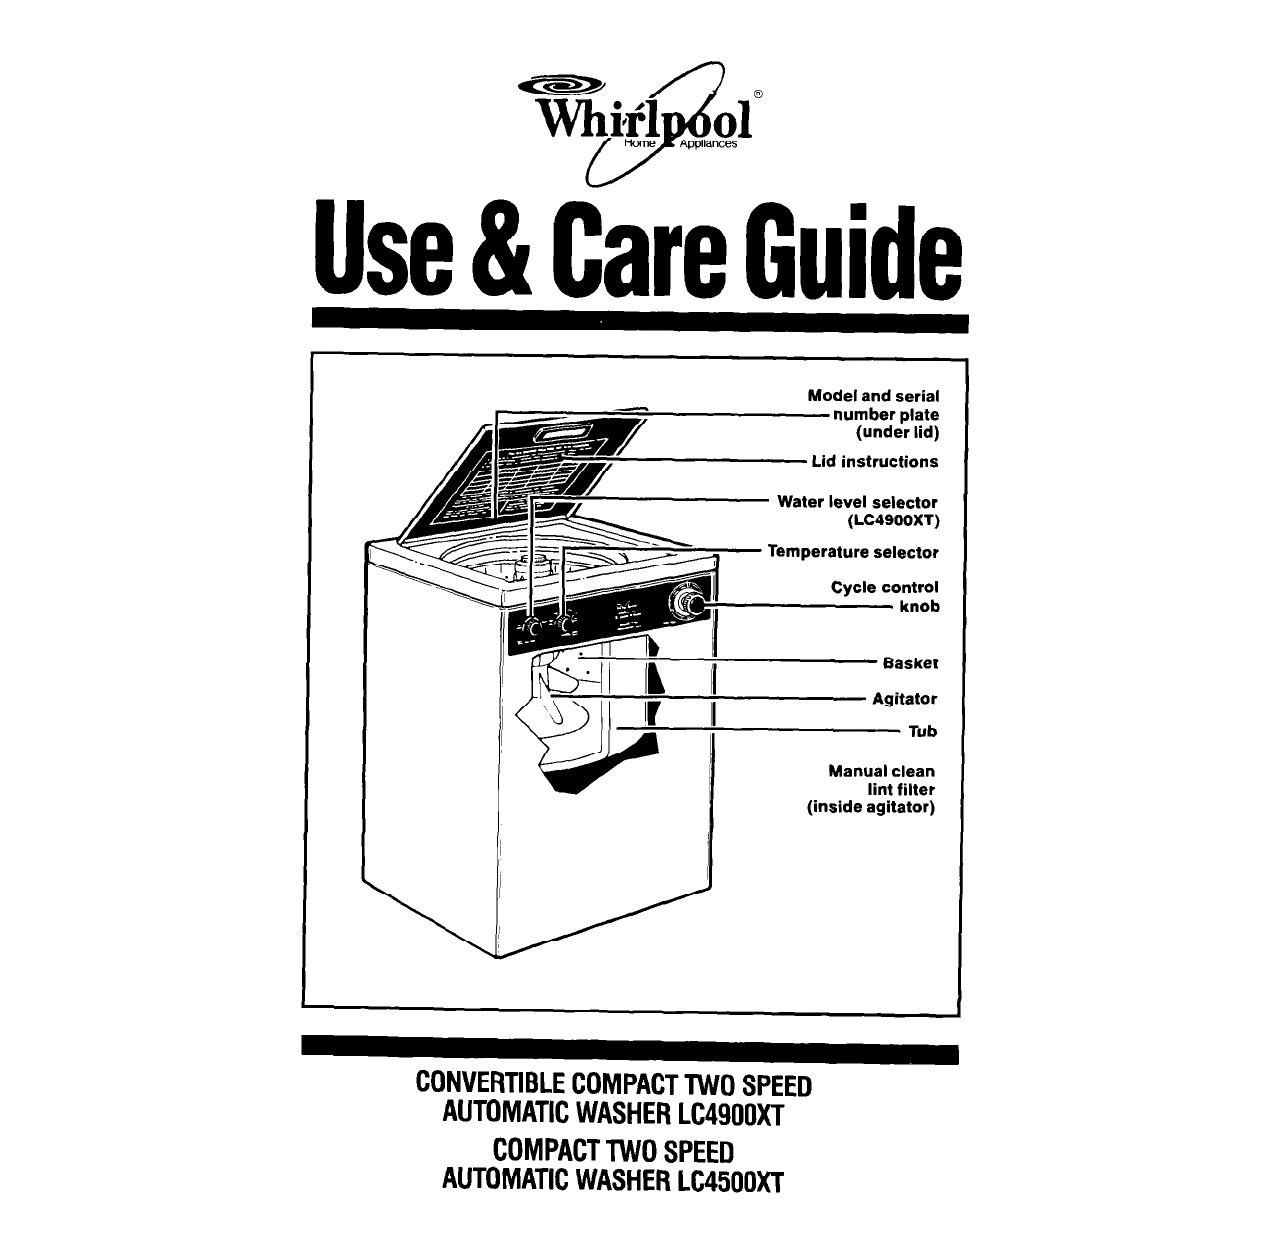 whirlpool washer lc4500xt user guide